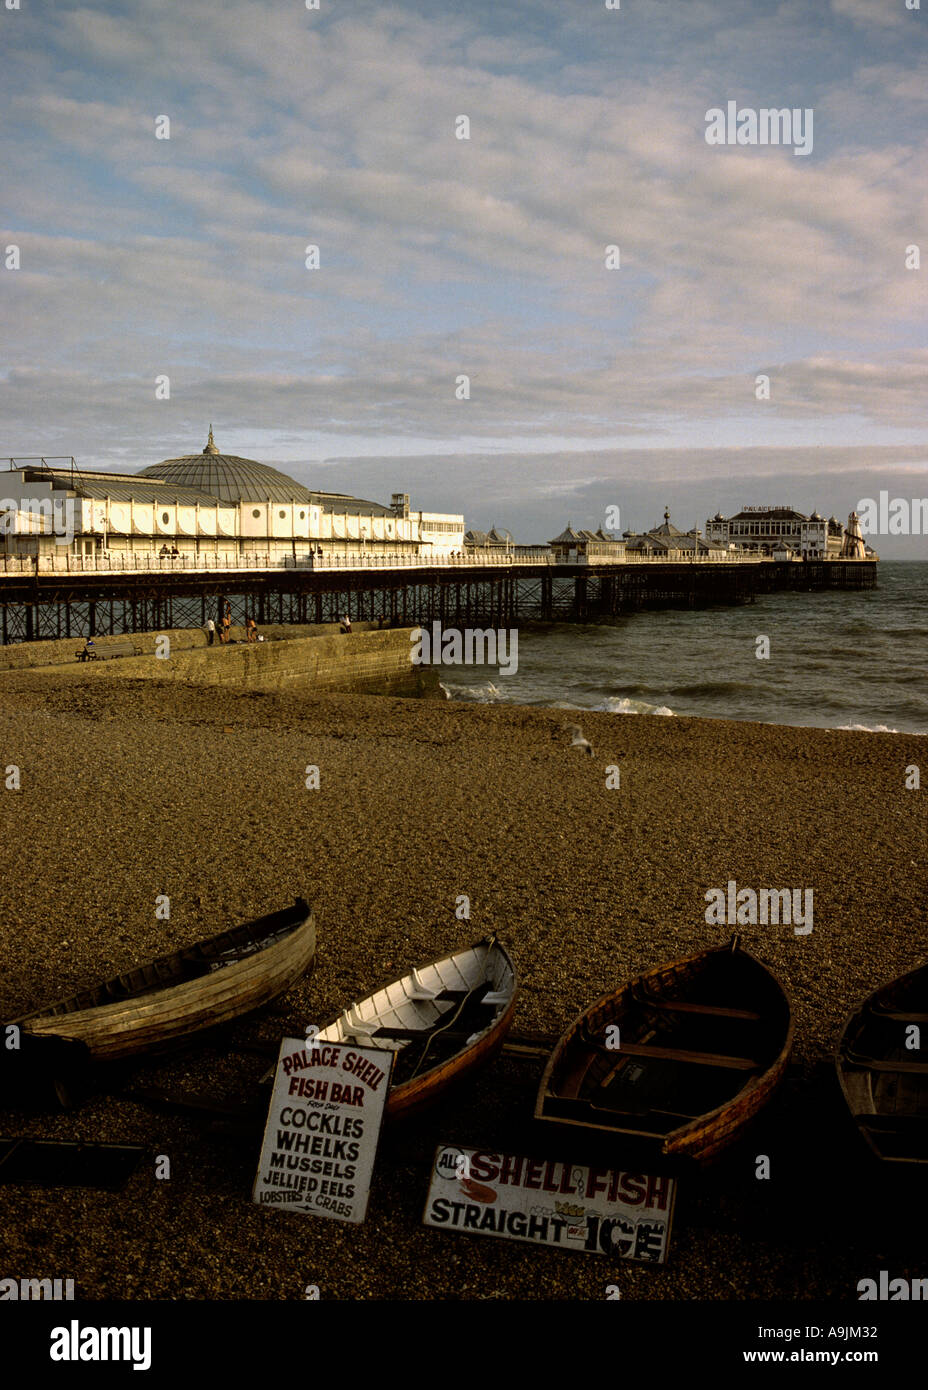 Victorian amusement pier on the seaside Brighton small wooden rownung boats pulled up on the shingle beach Shell Stock Photo